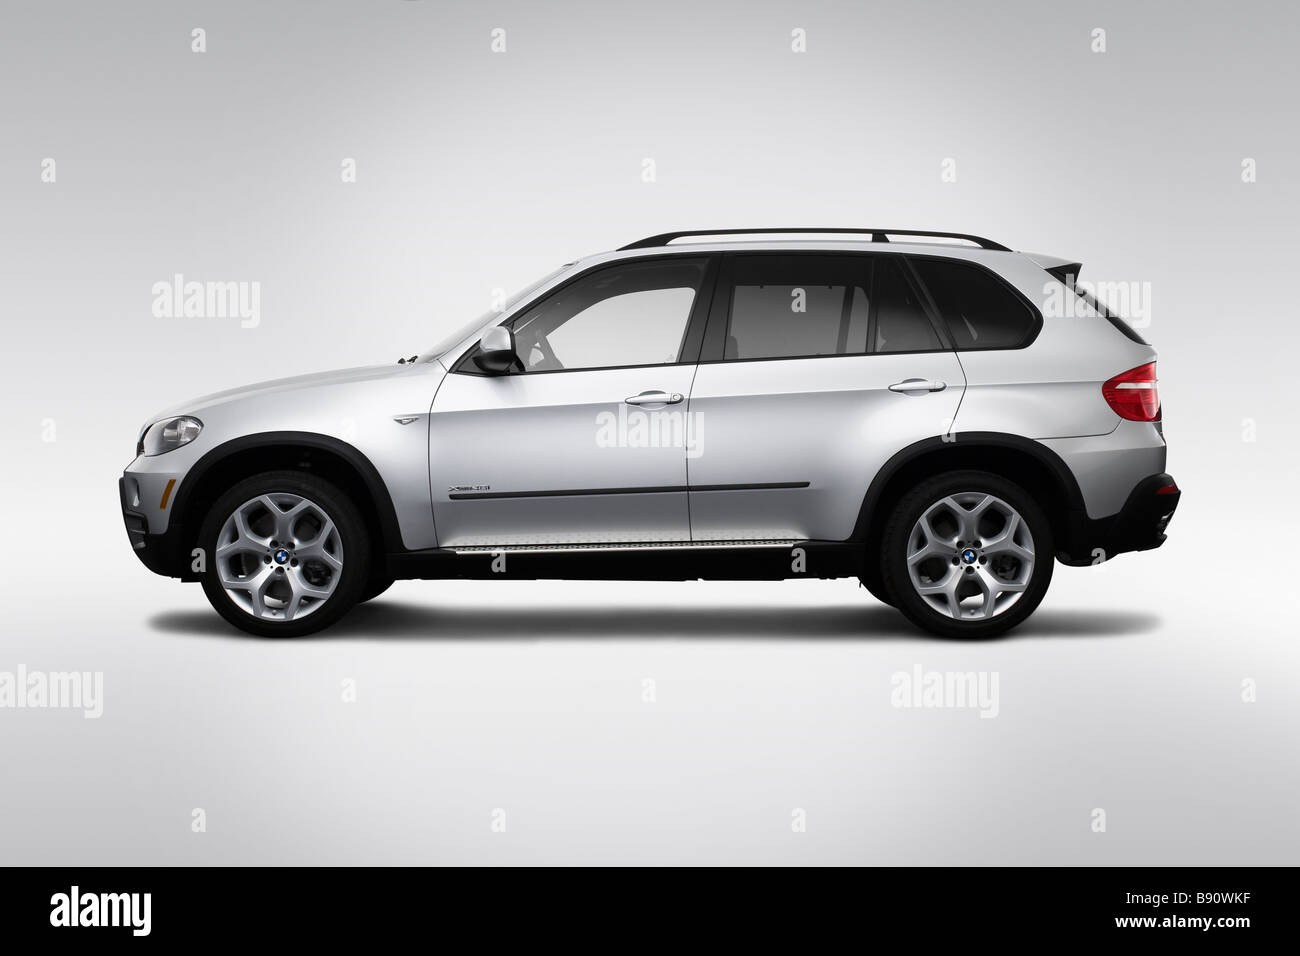 2009 BMW X5 4.8i in Silver - Drivers Side Profile - Stock Image